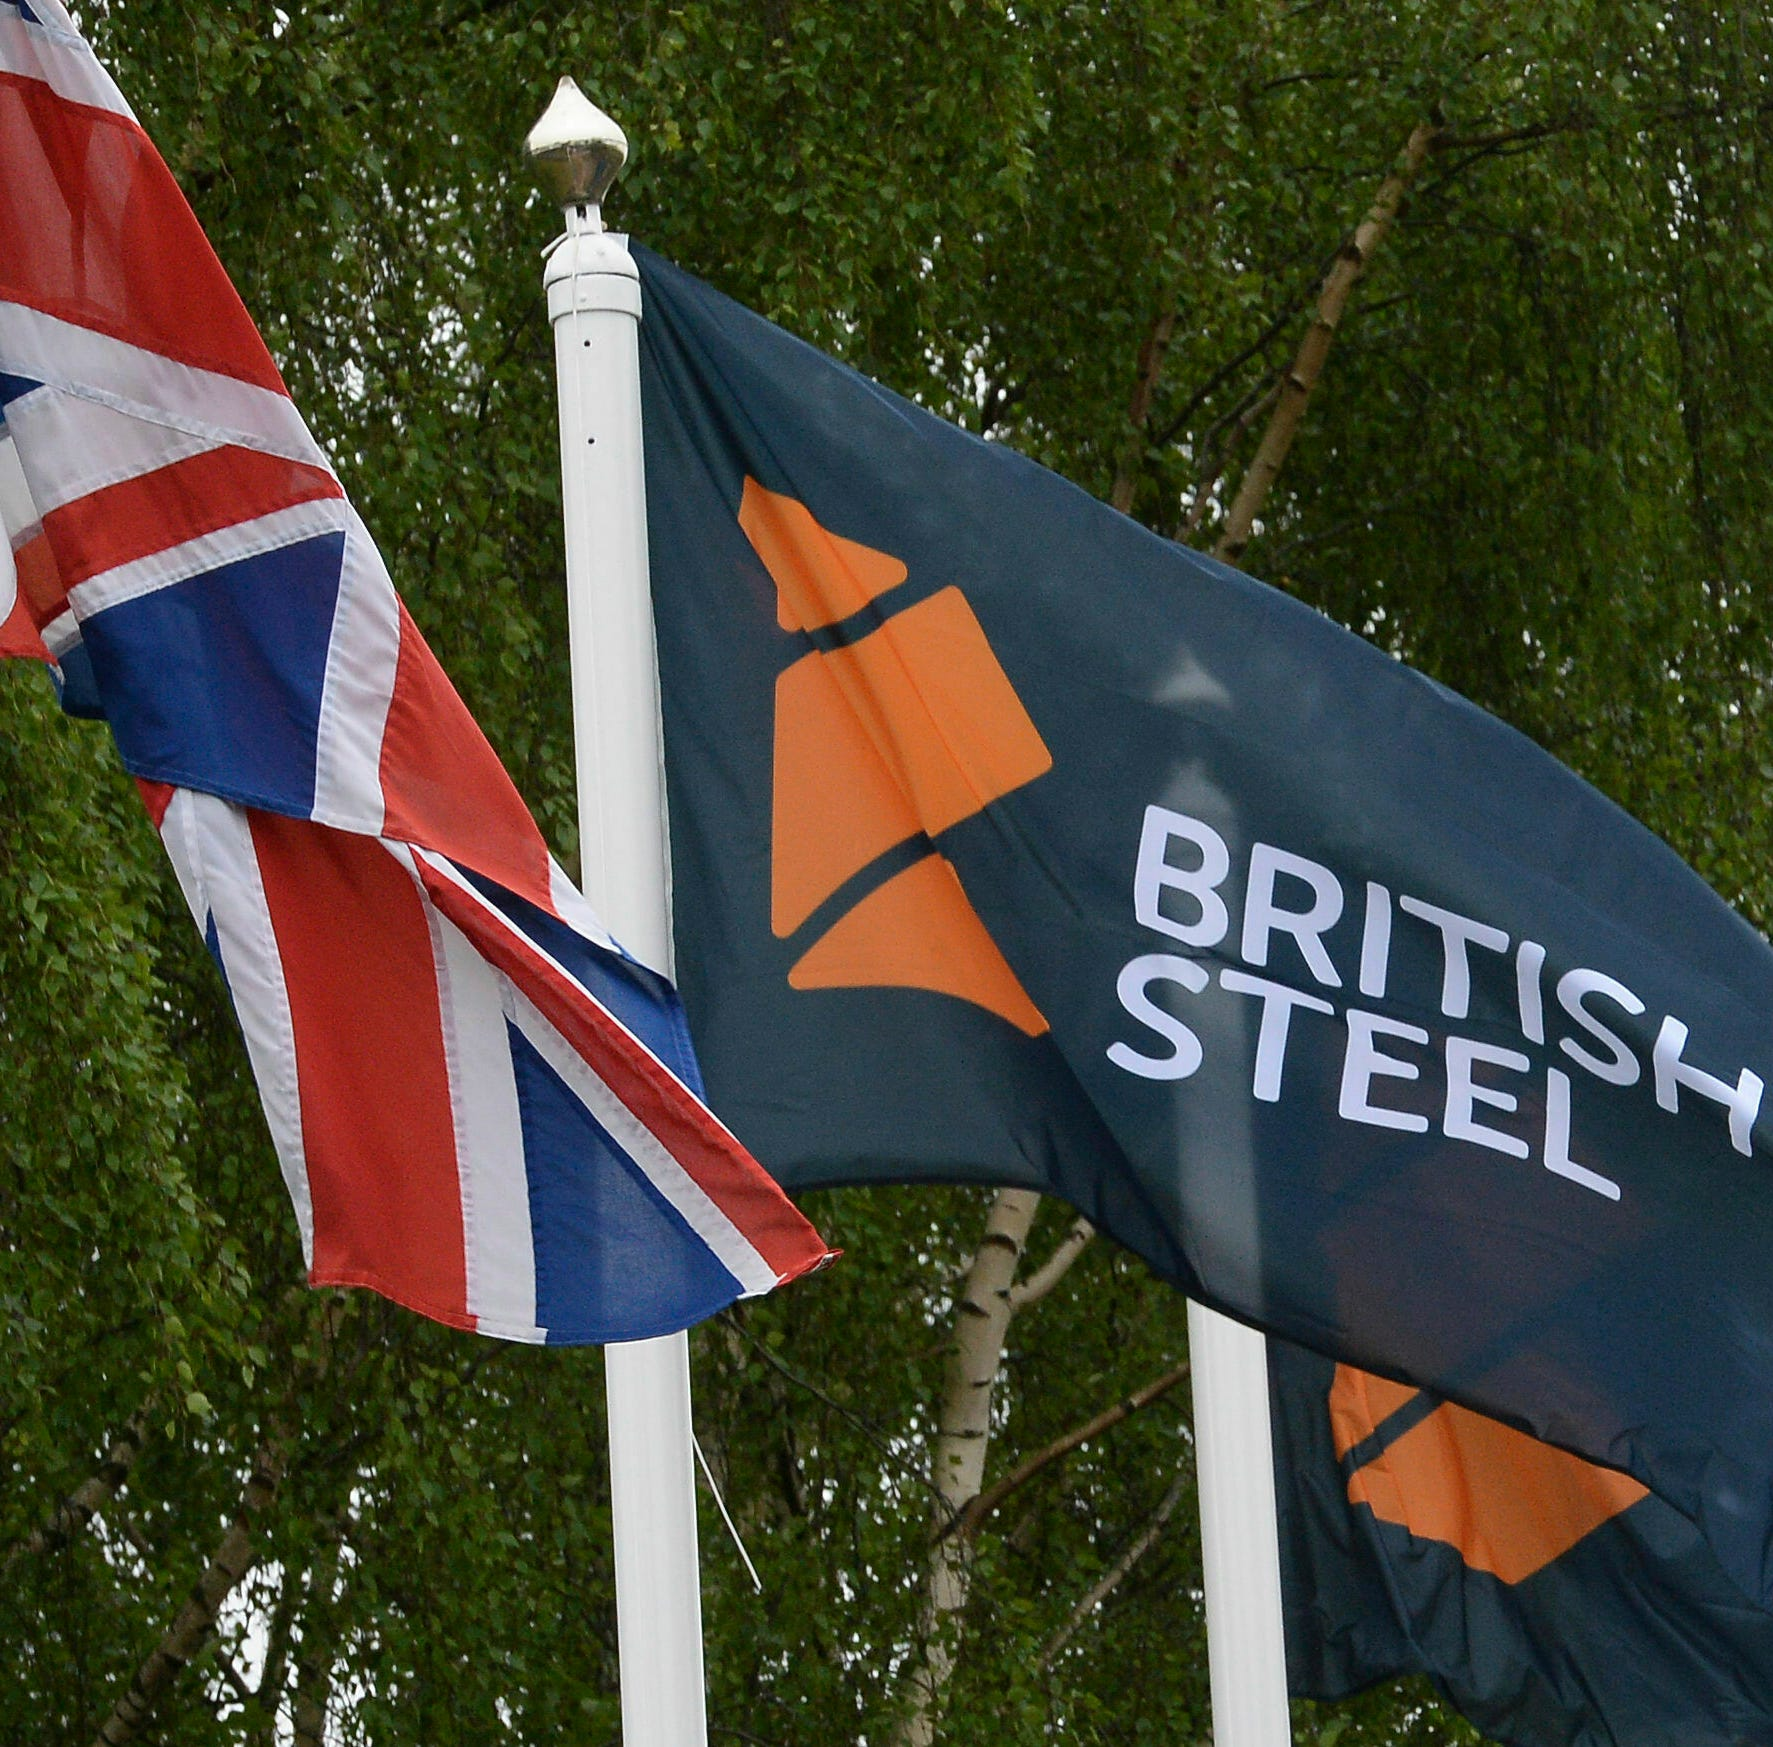 British Steel collapses, threatening thousands of jobs